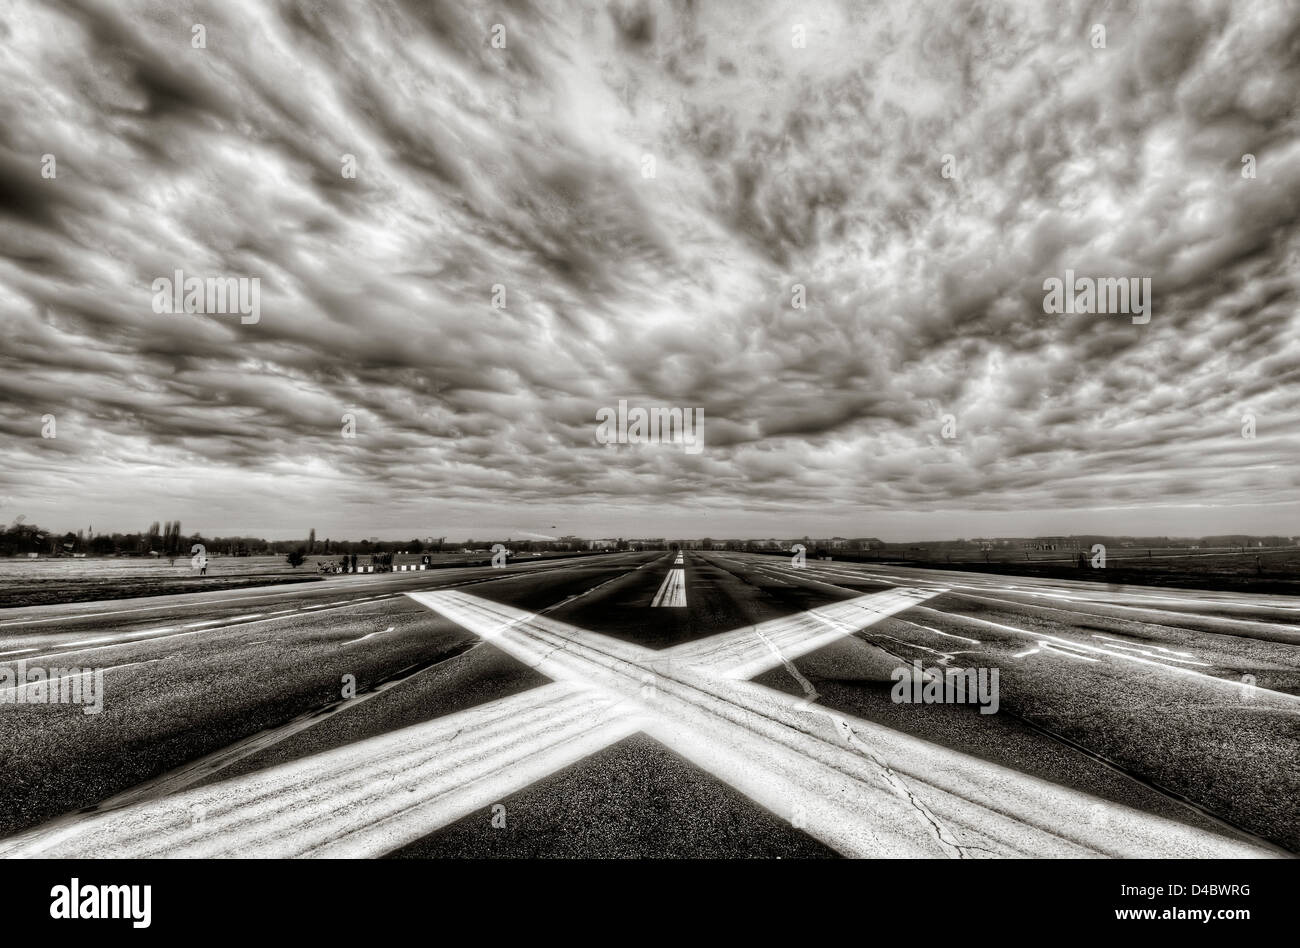 The runway on the disused Tempelhof airport in Berlin - Stock Image